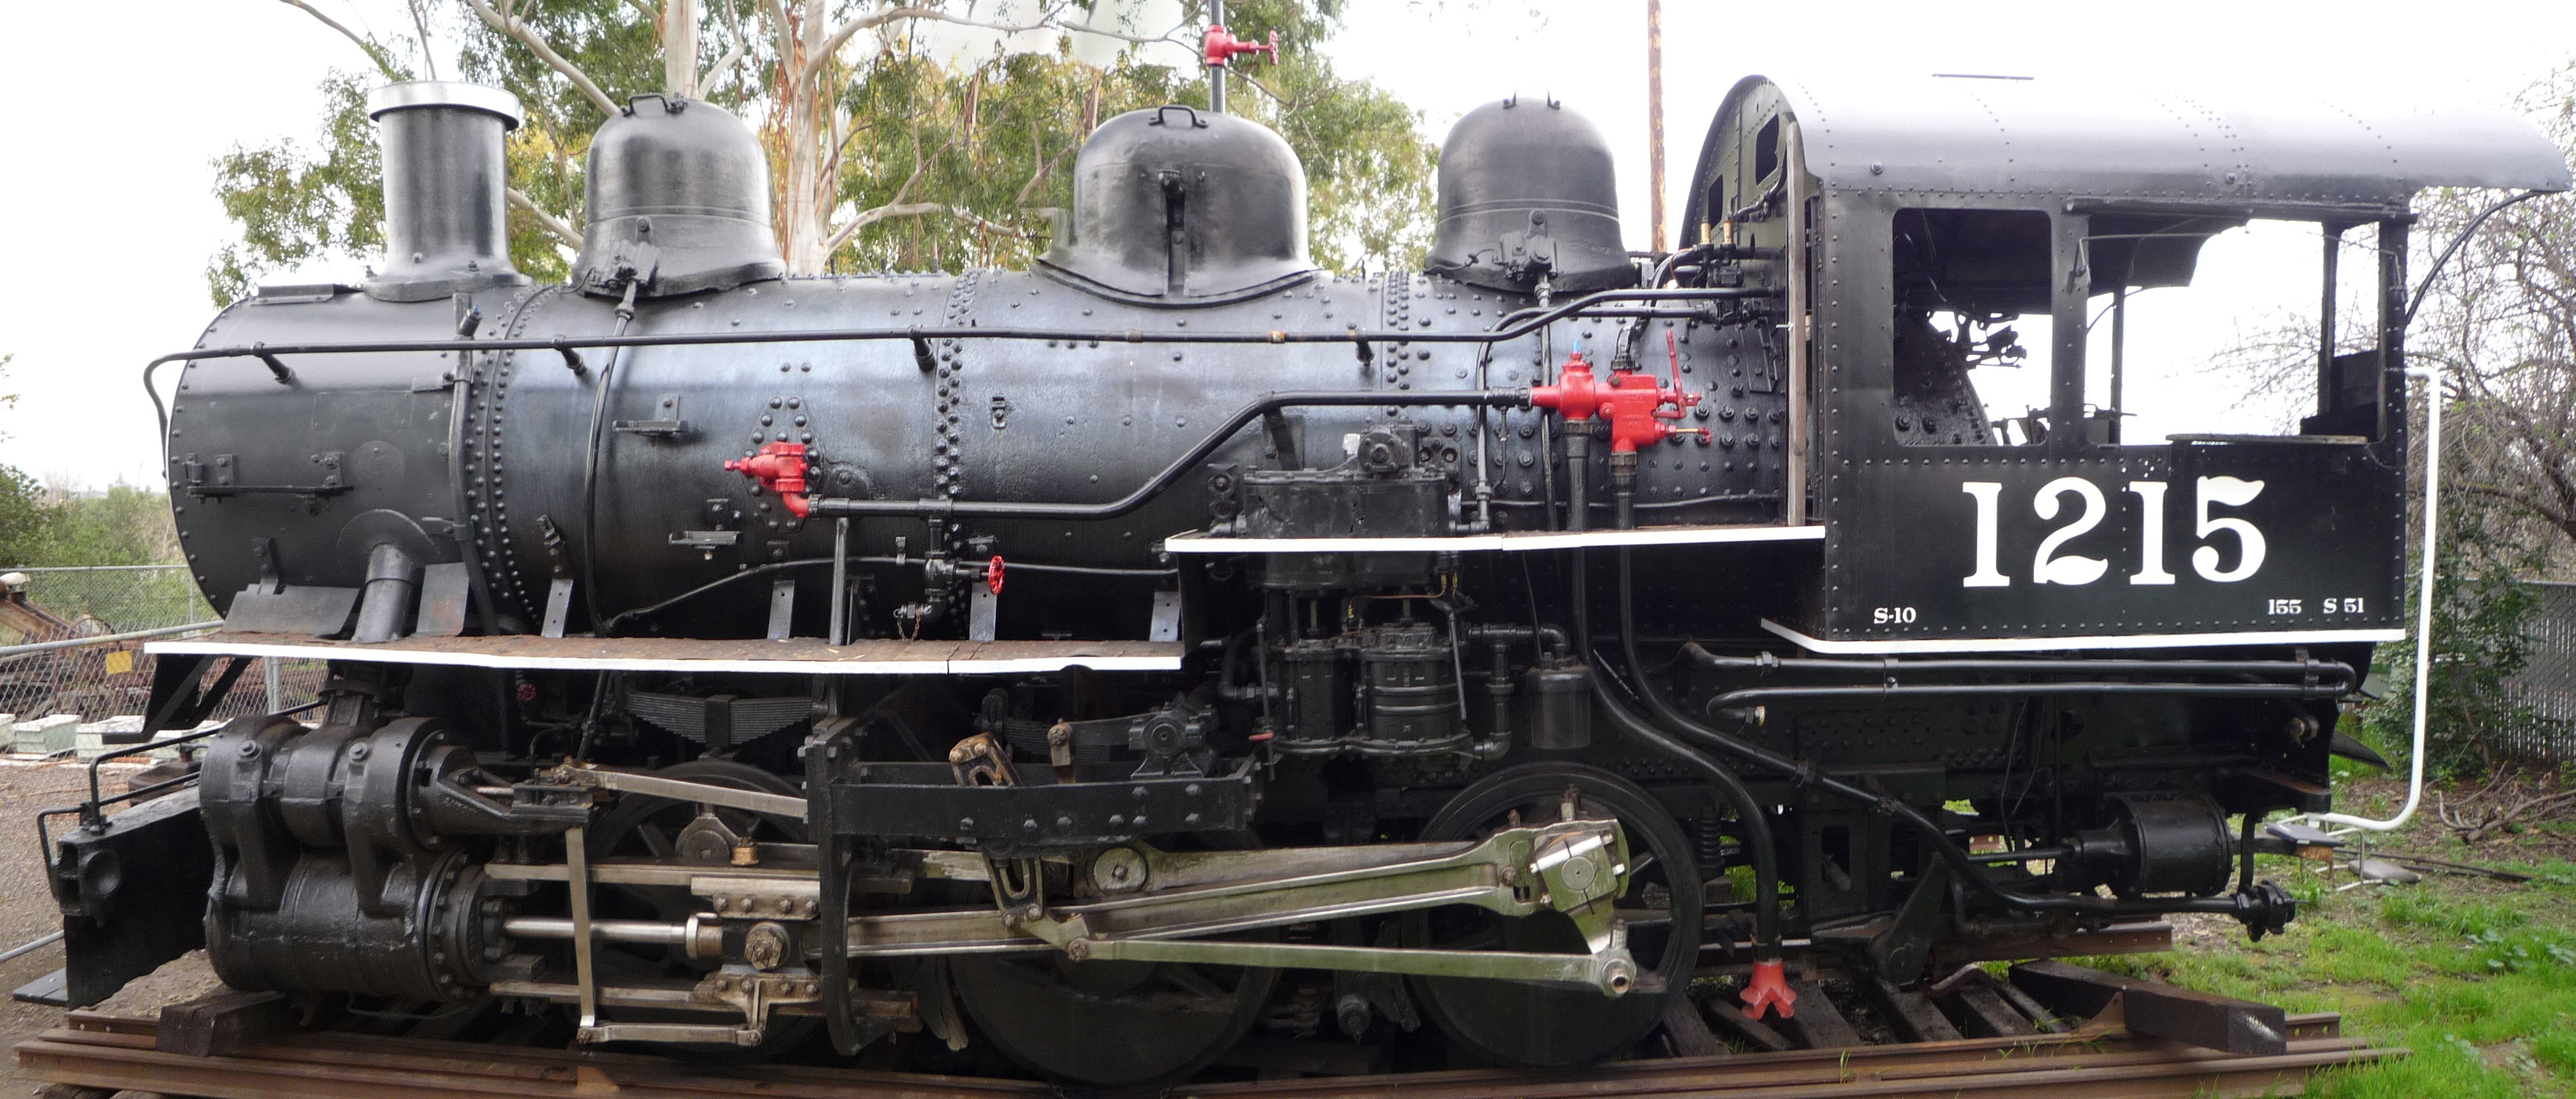 File:Southern Pacific Locomotive 1215.JPG